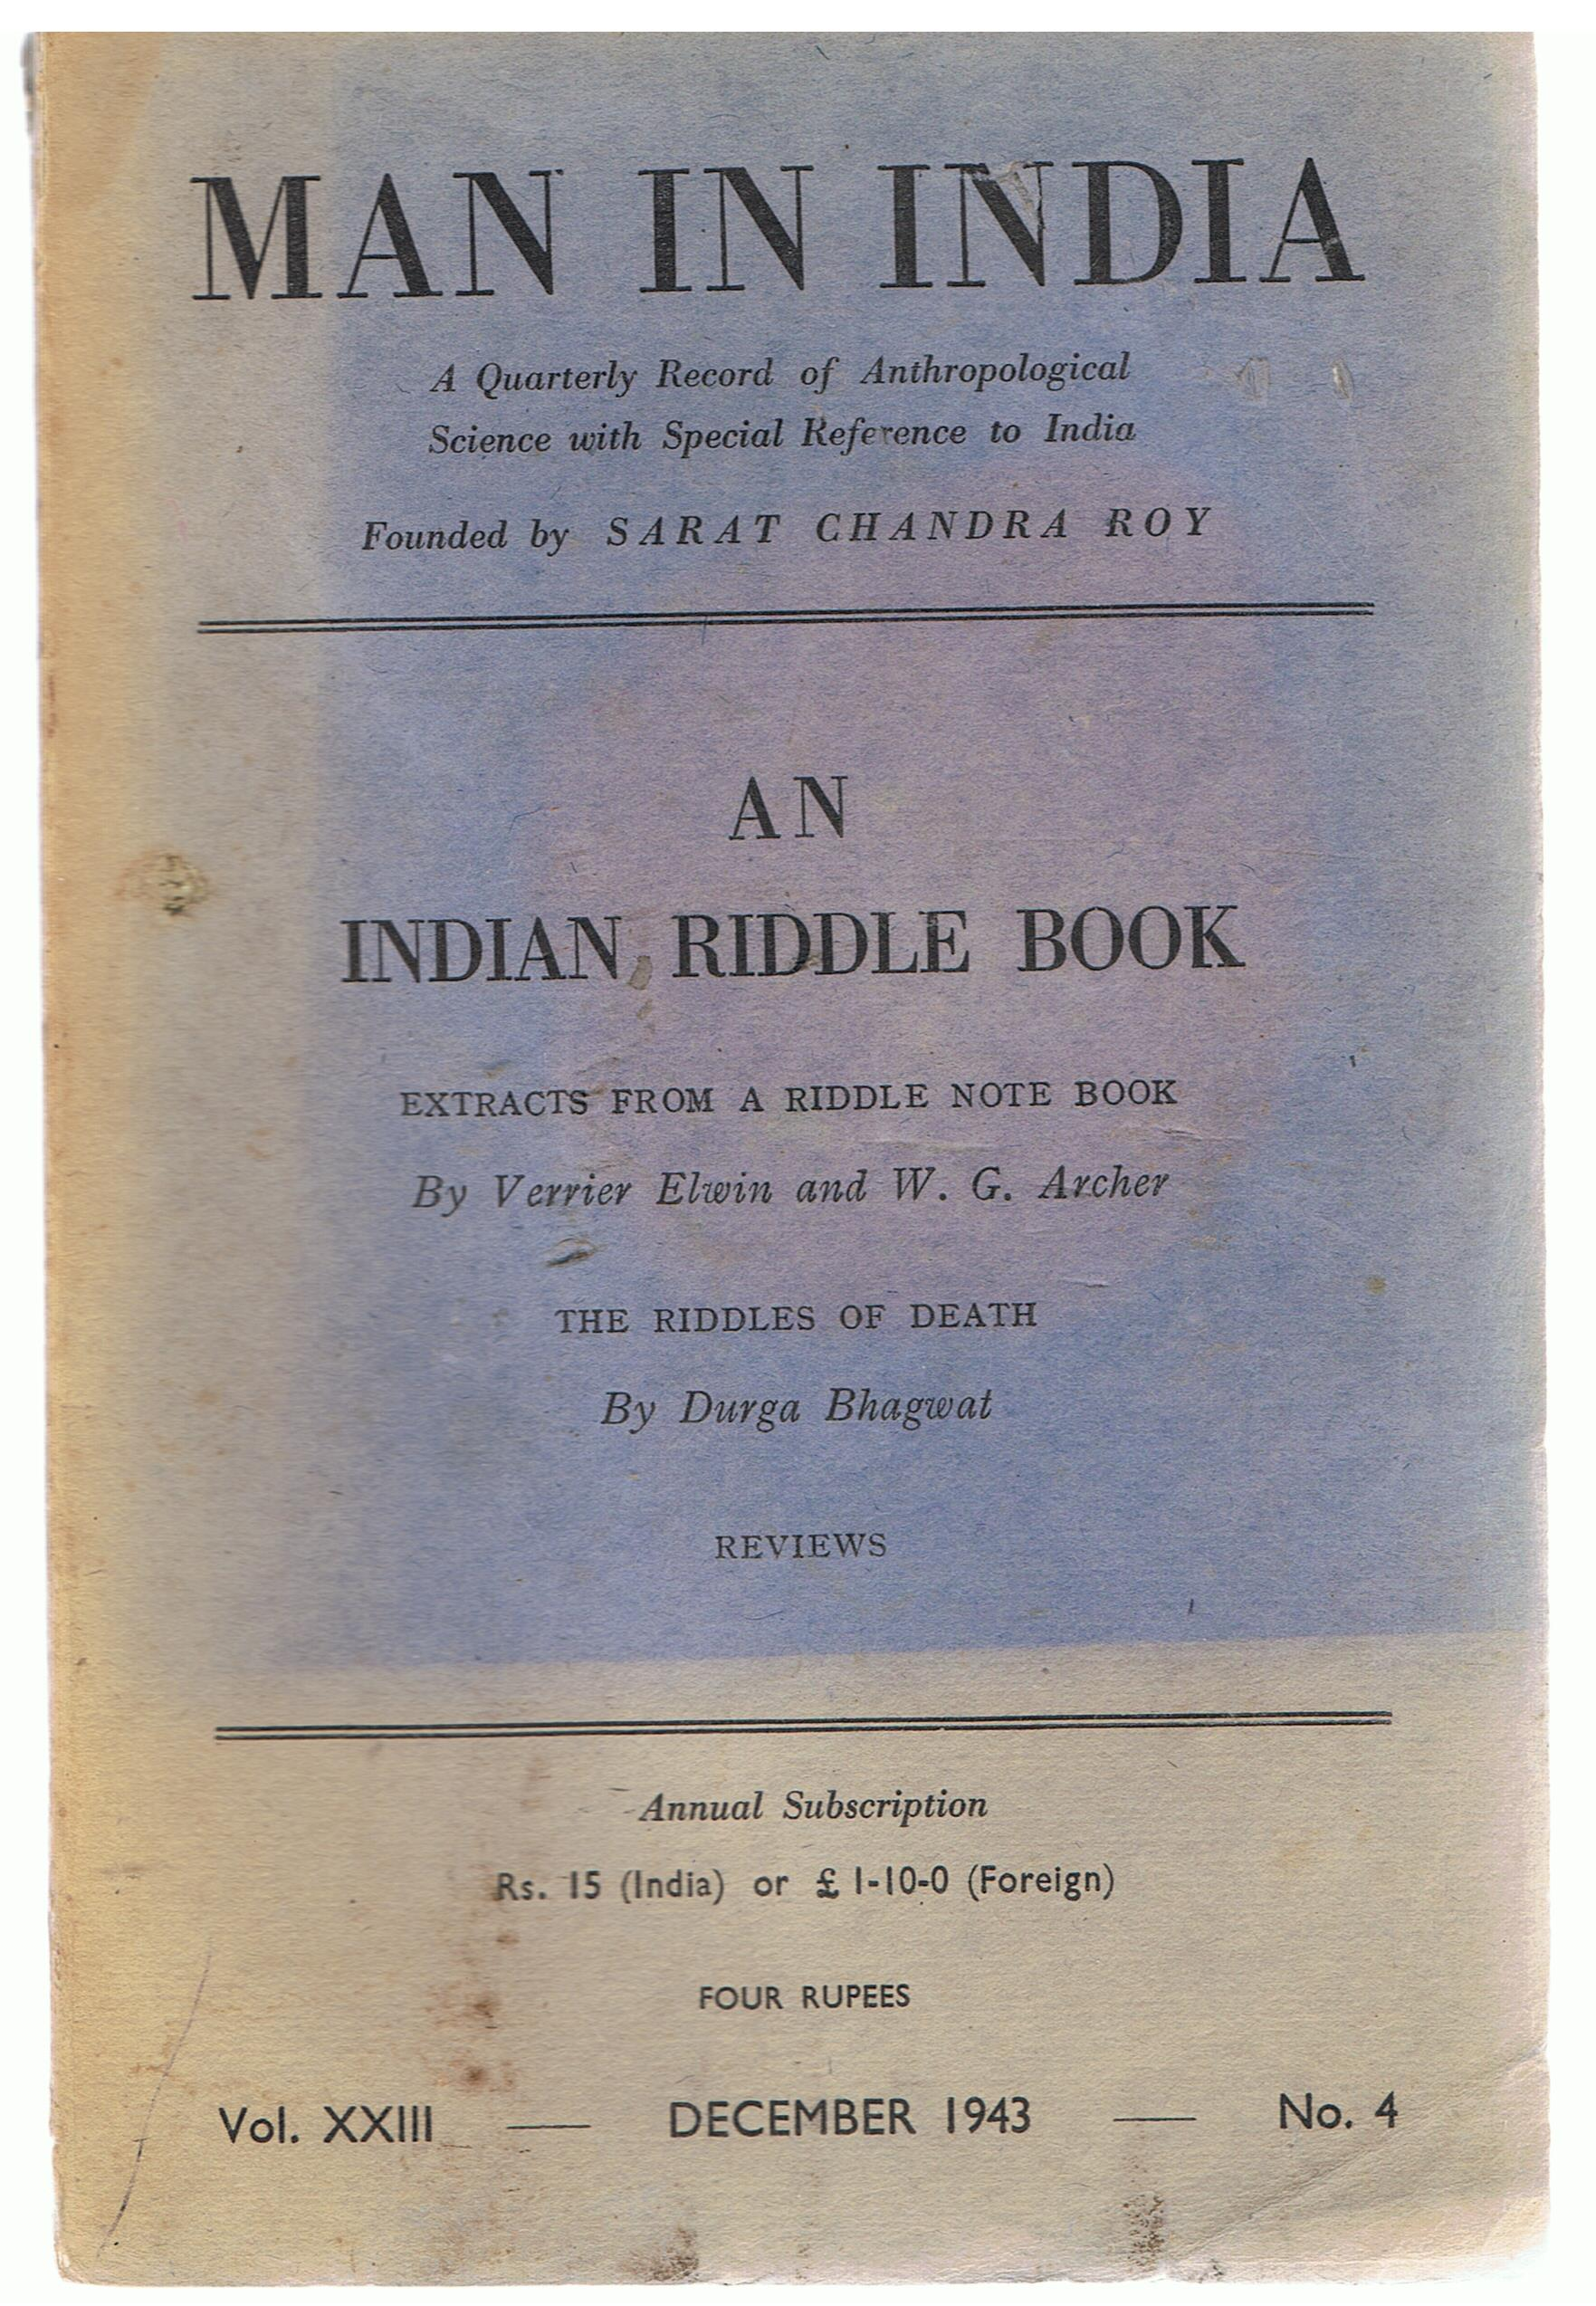 Image for Man in India a Quarterly Record of Anthropological Science with Special Reference to India. Vol 23, No. 4, December 1943.